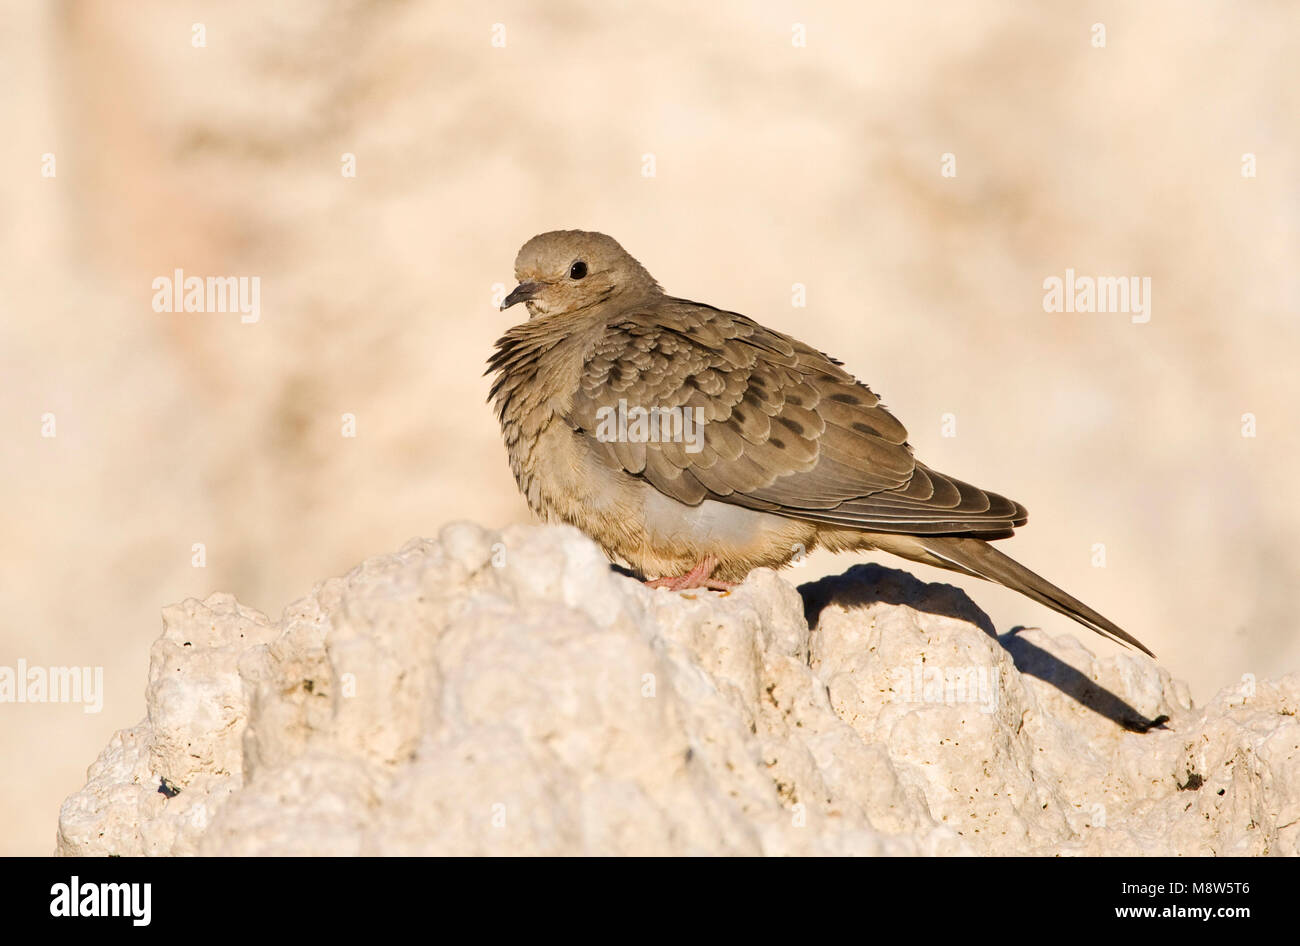 Treurduif, Mourning Dove - Stock Image